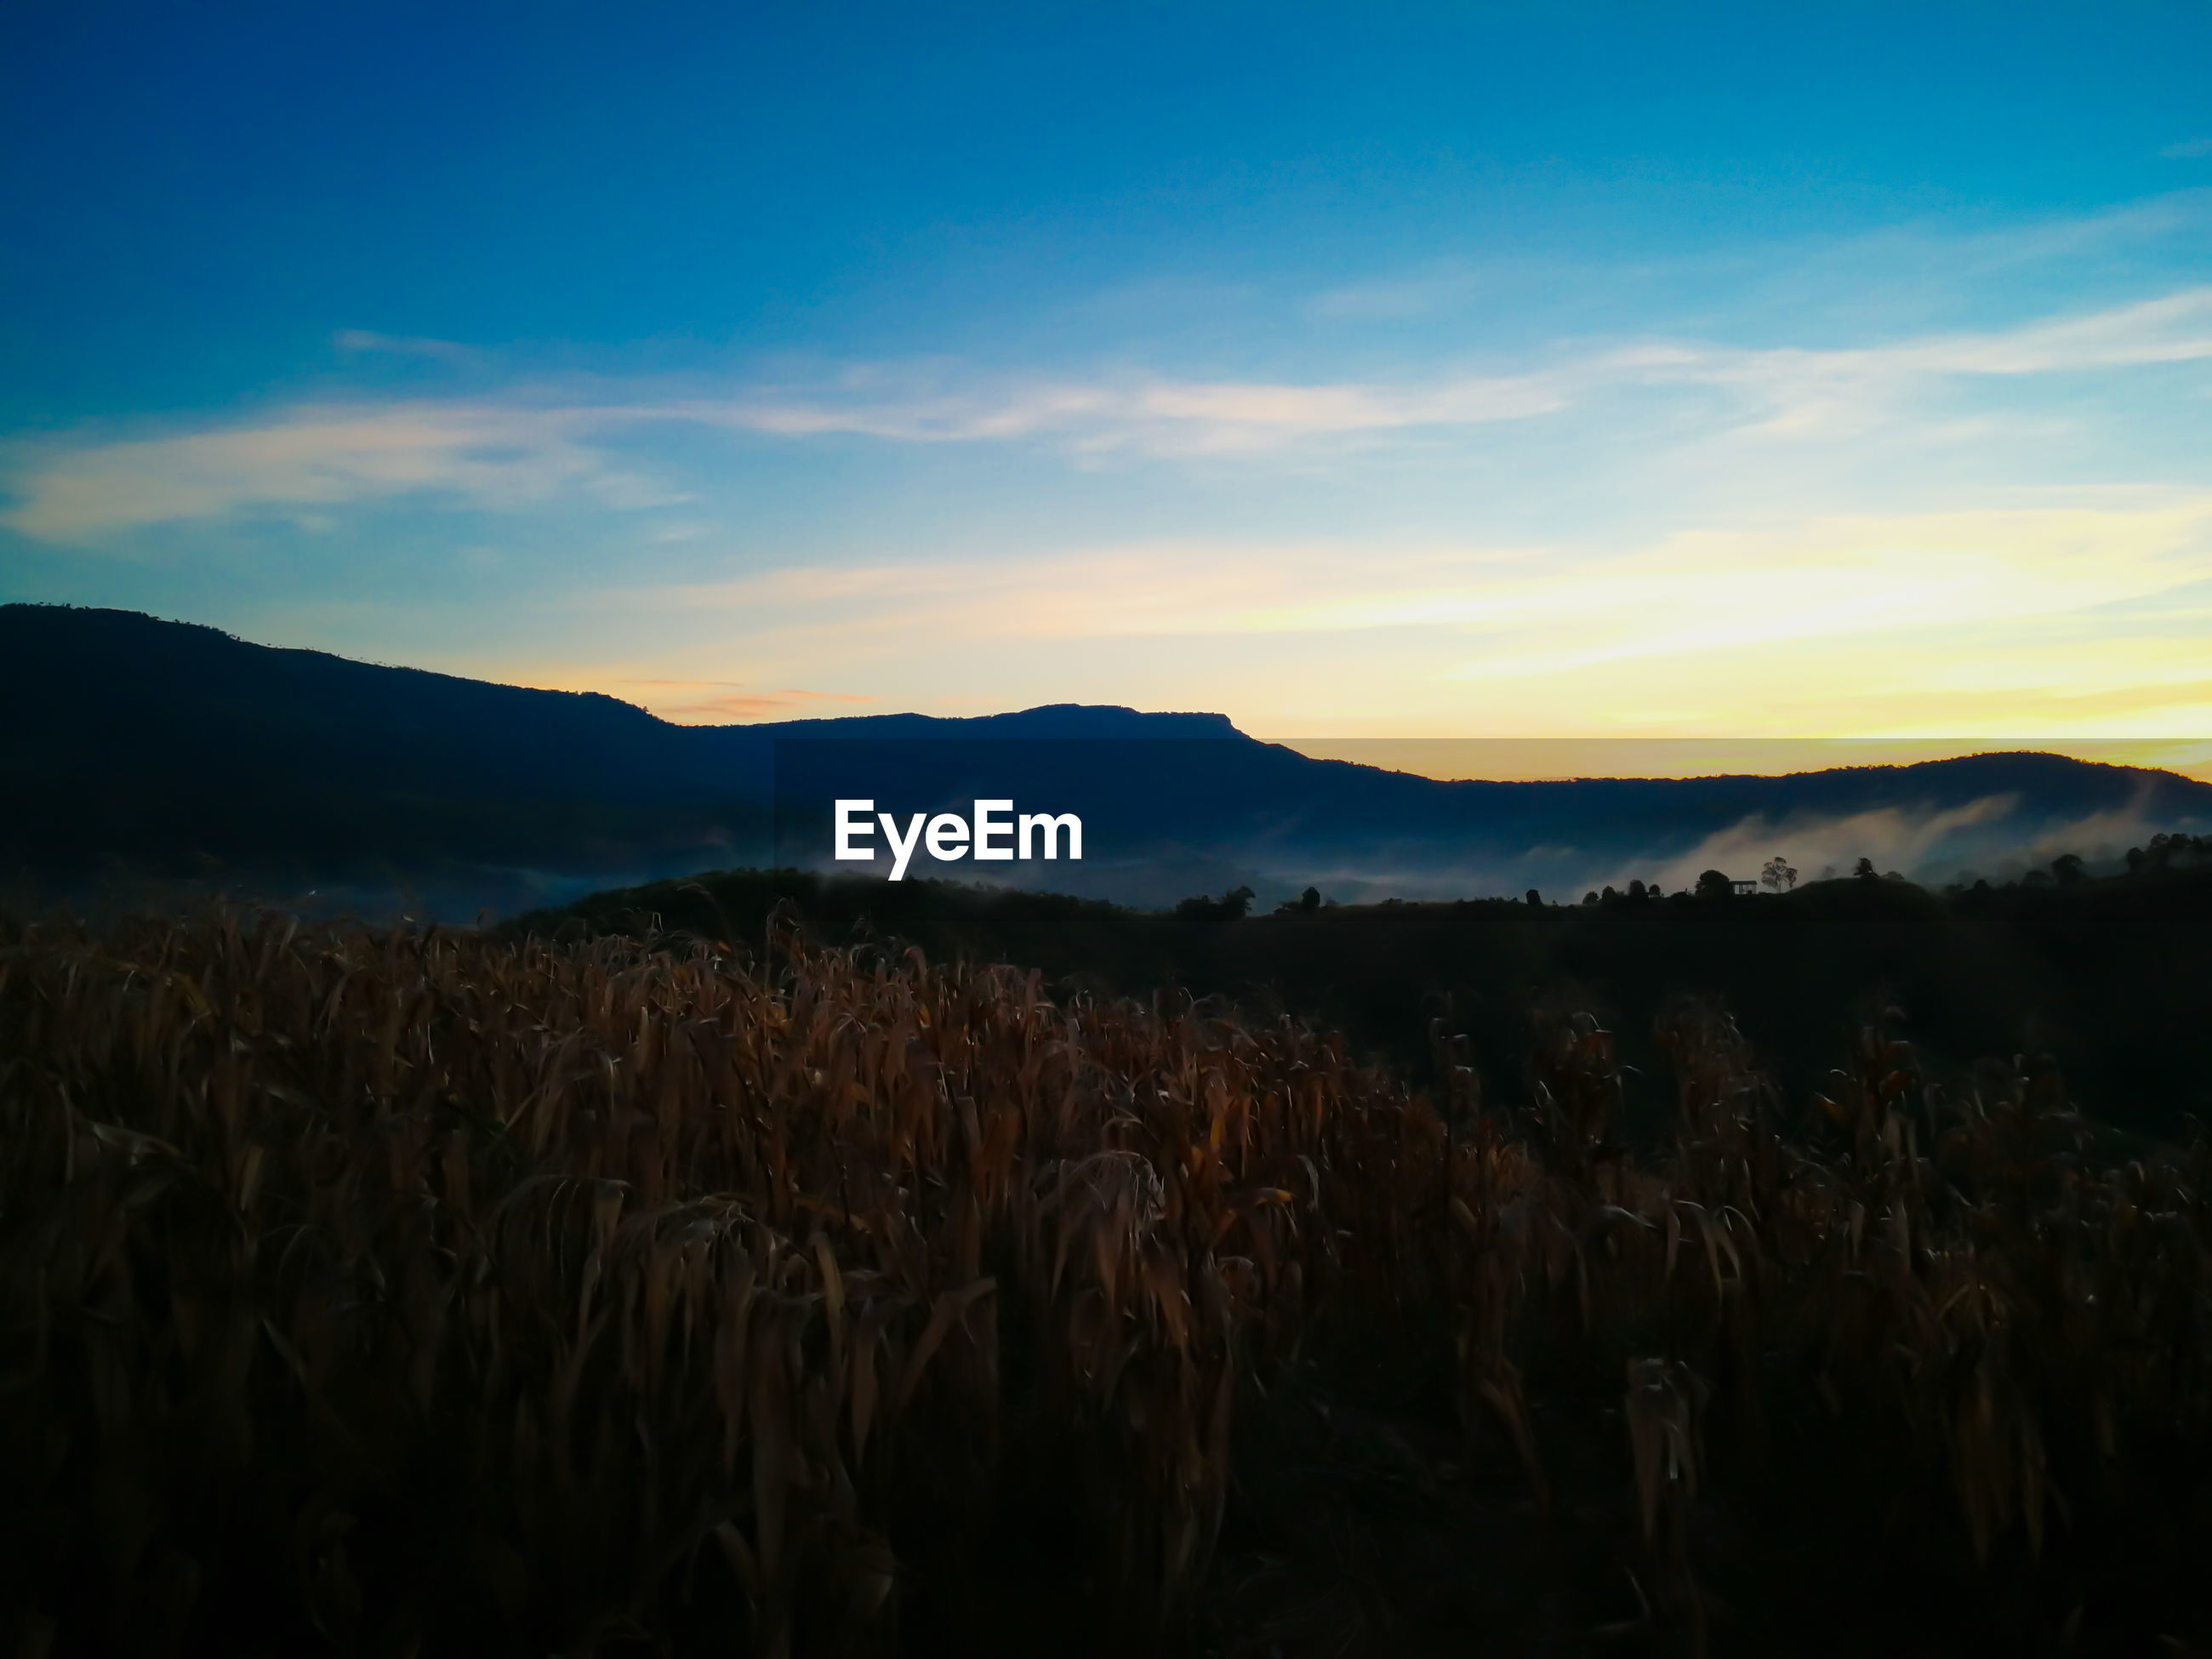 SCENIC VIEW OF FARM FIELD AGAINST SKY DURING SUNSET